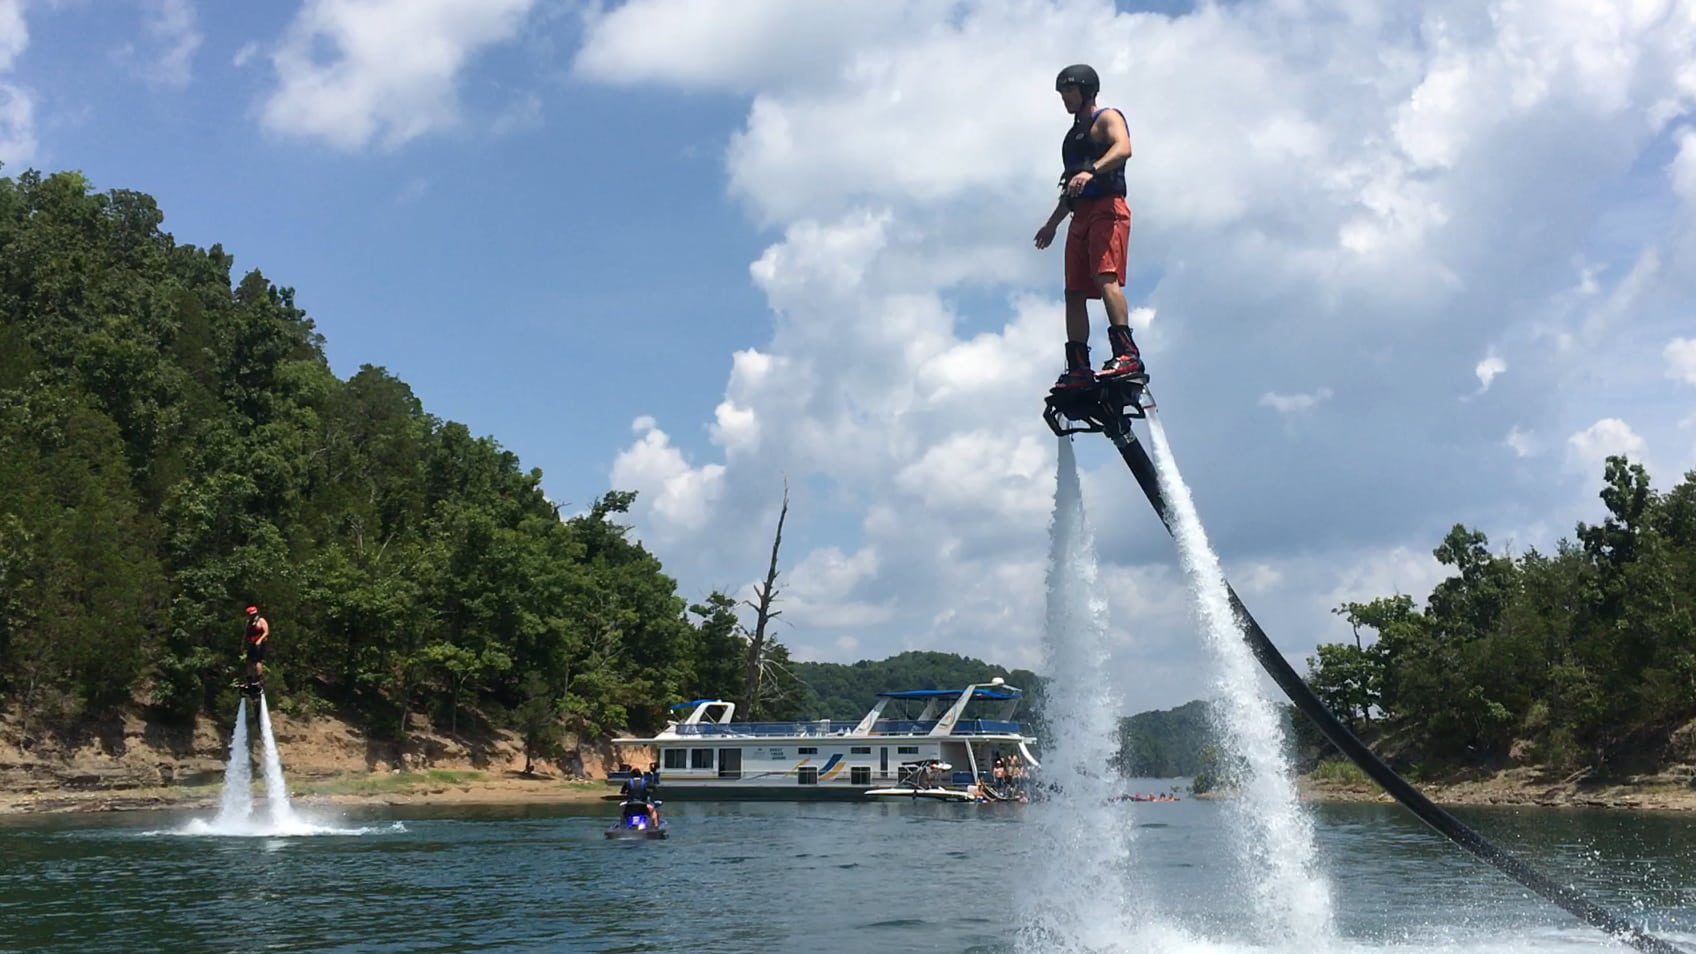 Nashville FlyBoard at Percy Priest Lake  FlyBoard, Hoverboard